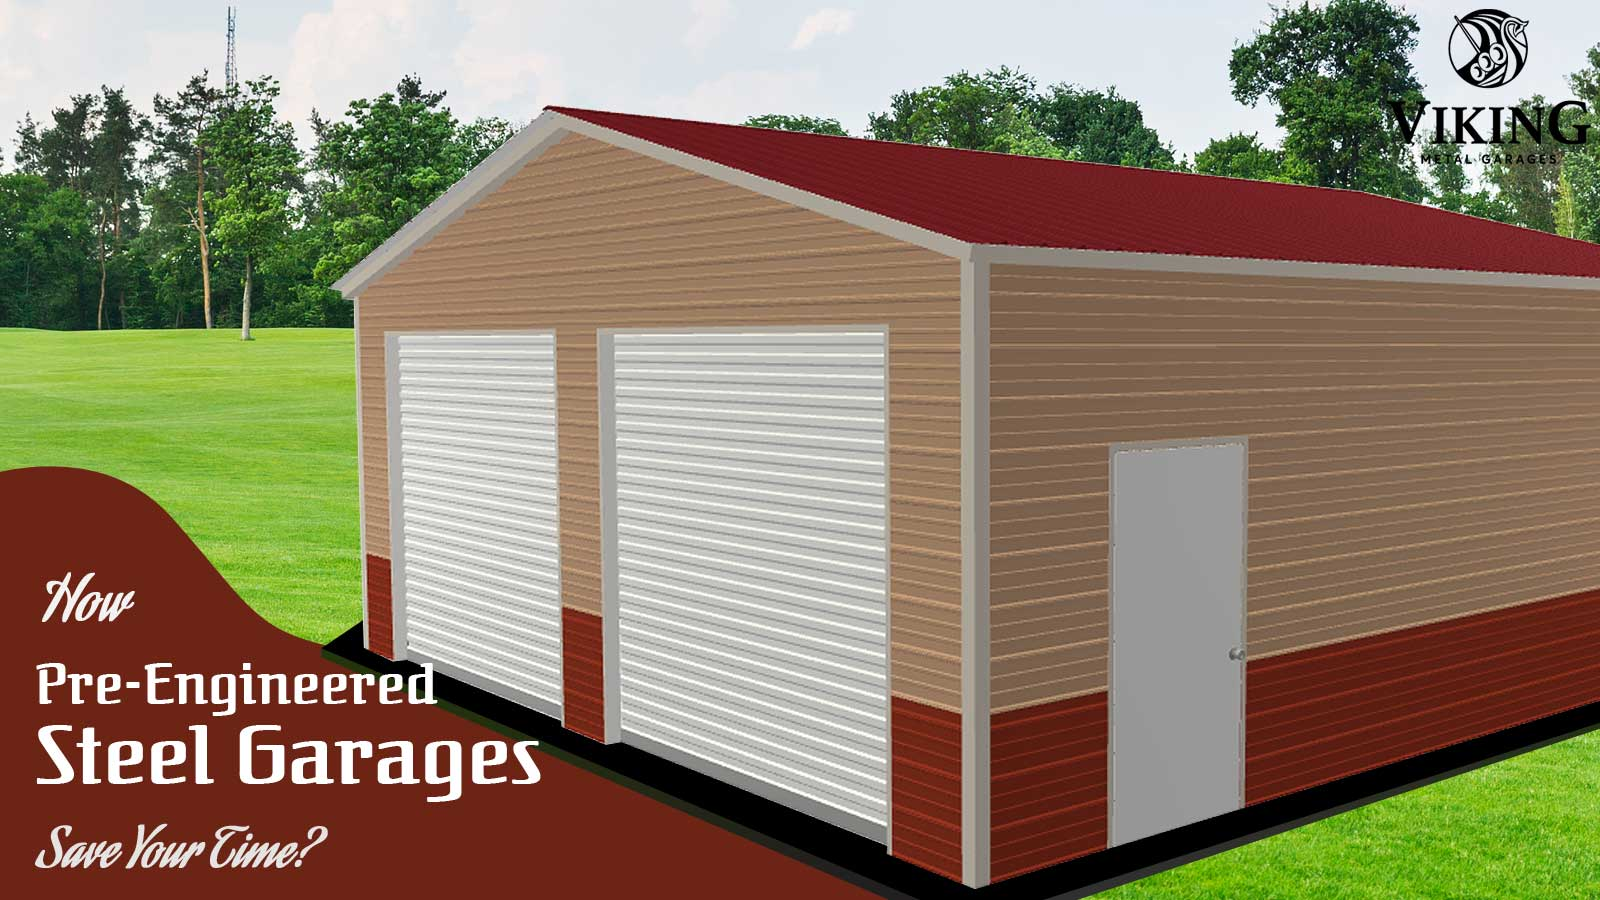 How Pre-engineered Steel Garages Save Your Time?